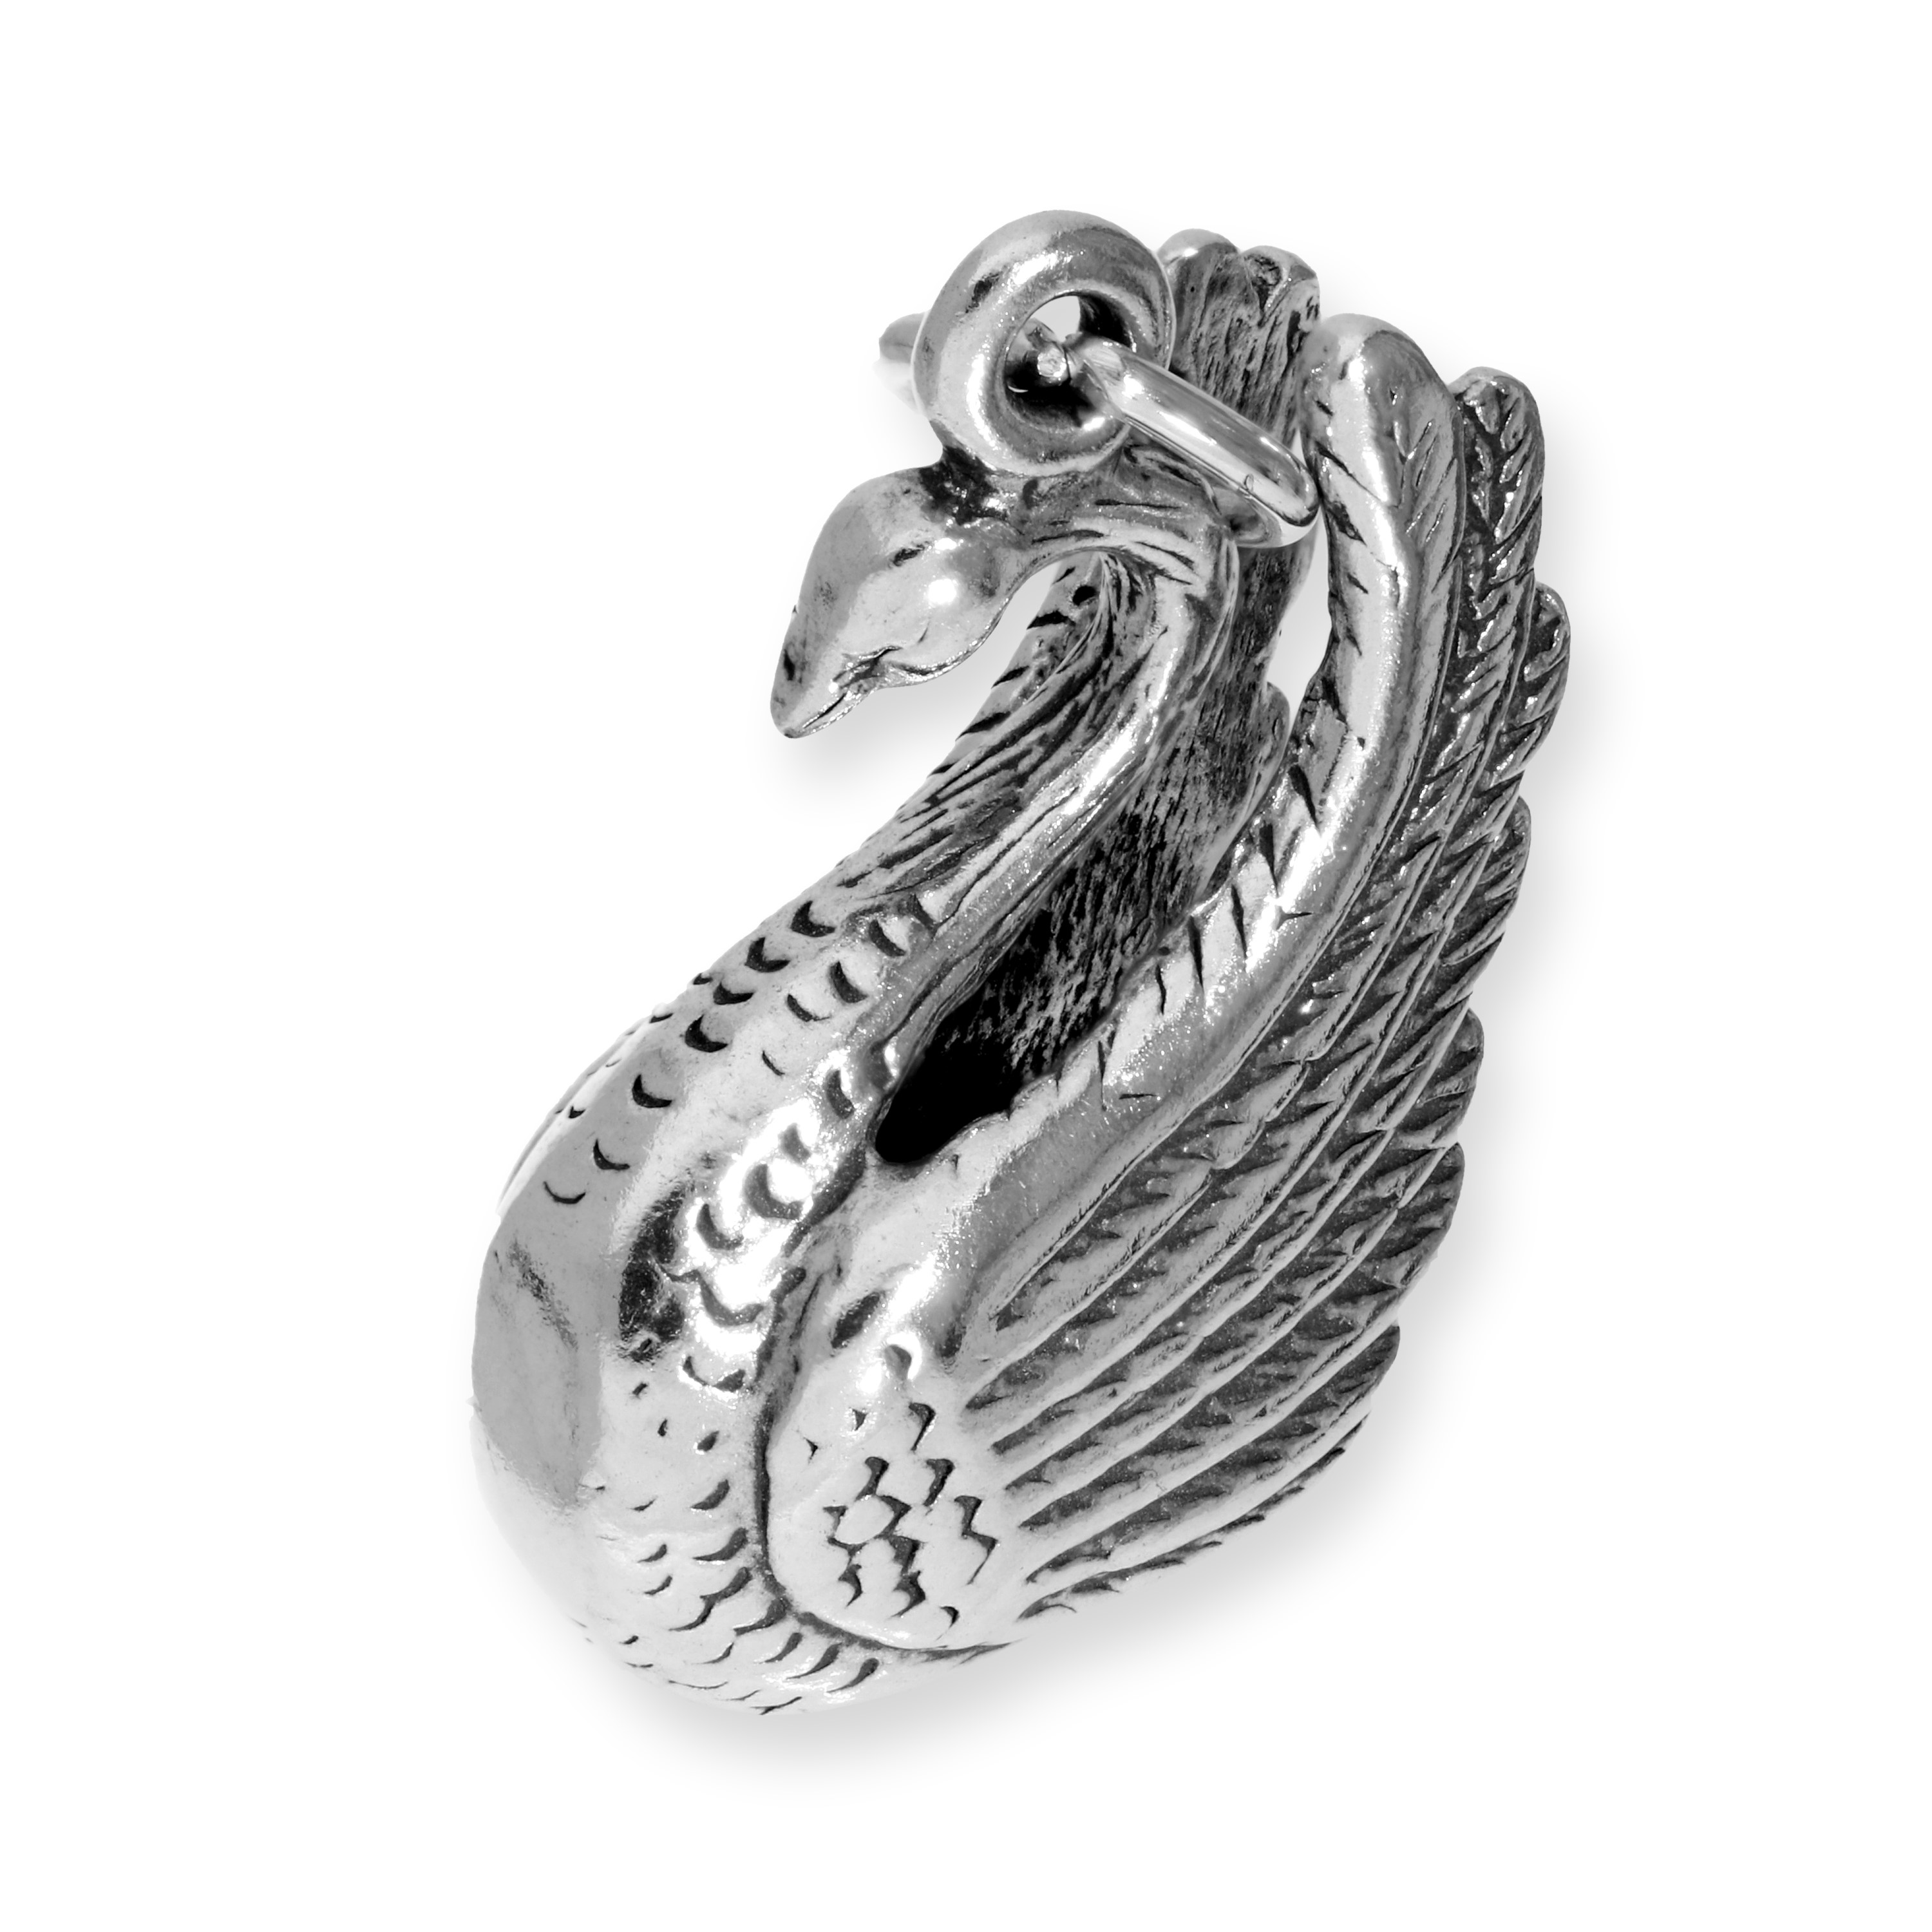 An image of Sterling Silver Large Swan Charm